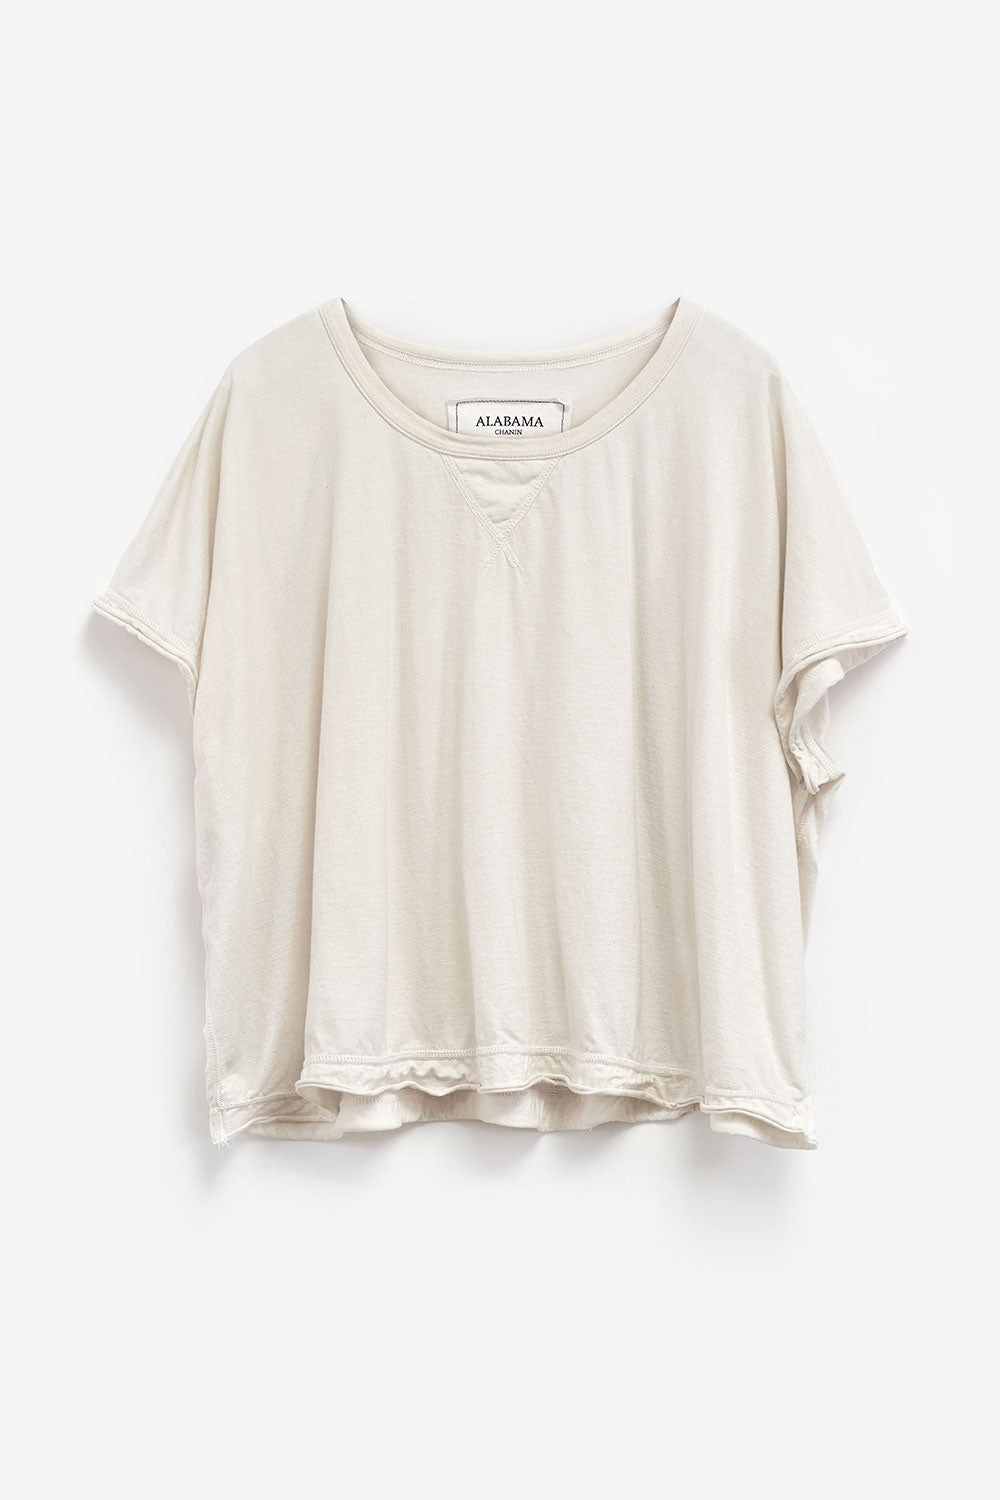 Alabama Chanin Oversized Coverup Organic Cotton Womens Top in Natural